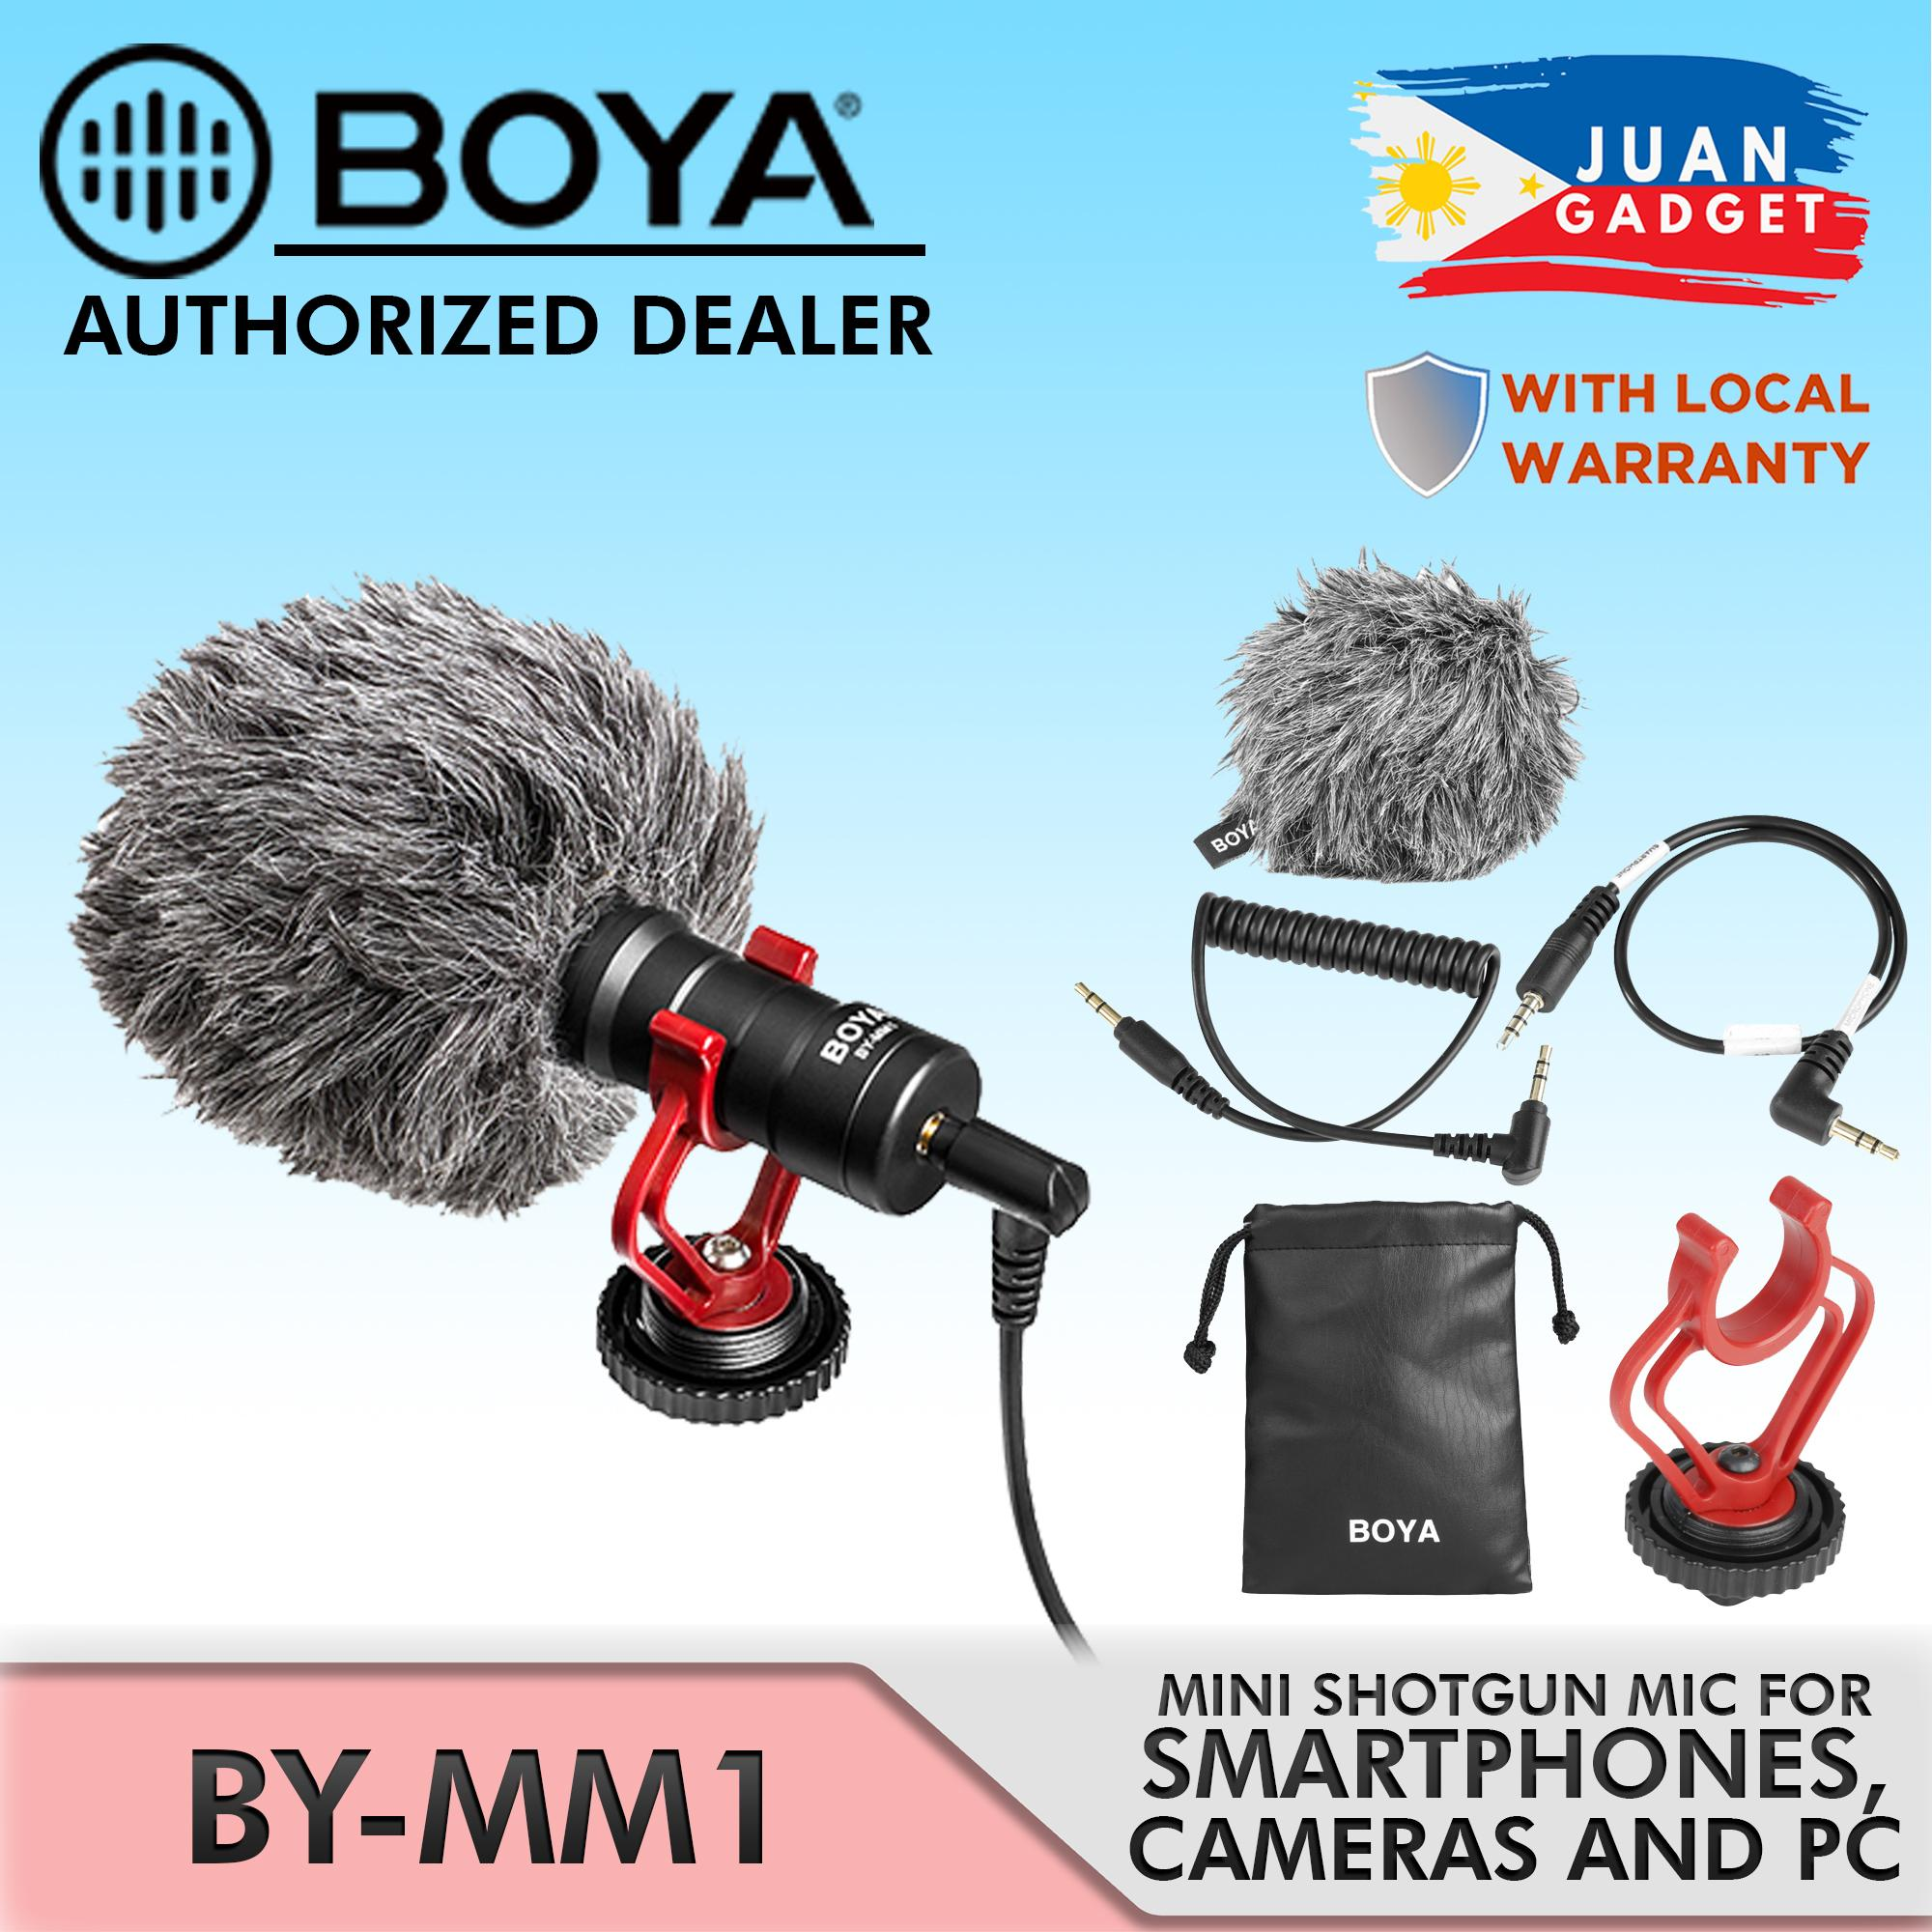 BOYA BY-MM1 MM1 Compact On-Camera Video Microphone Youtube Vlogging Recording Mic